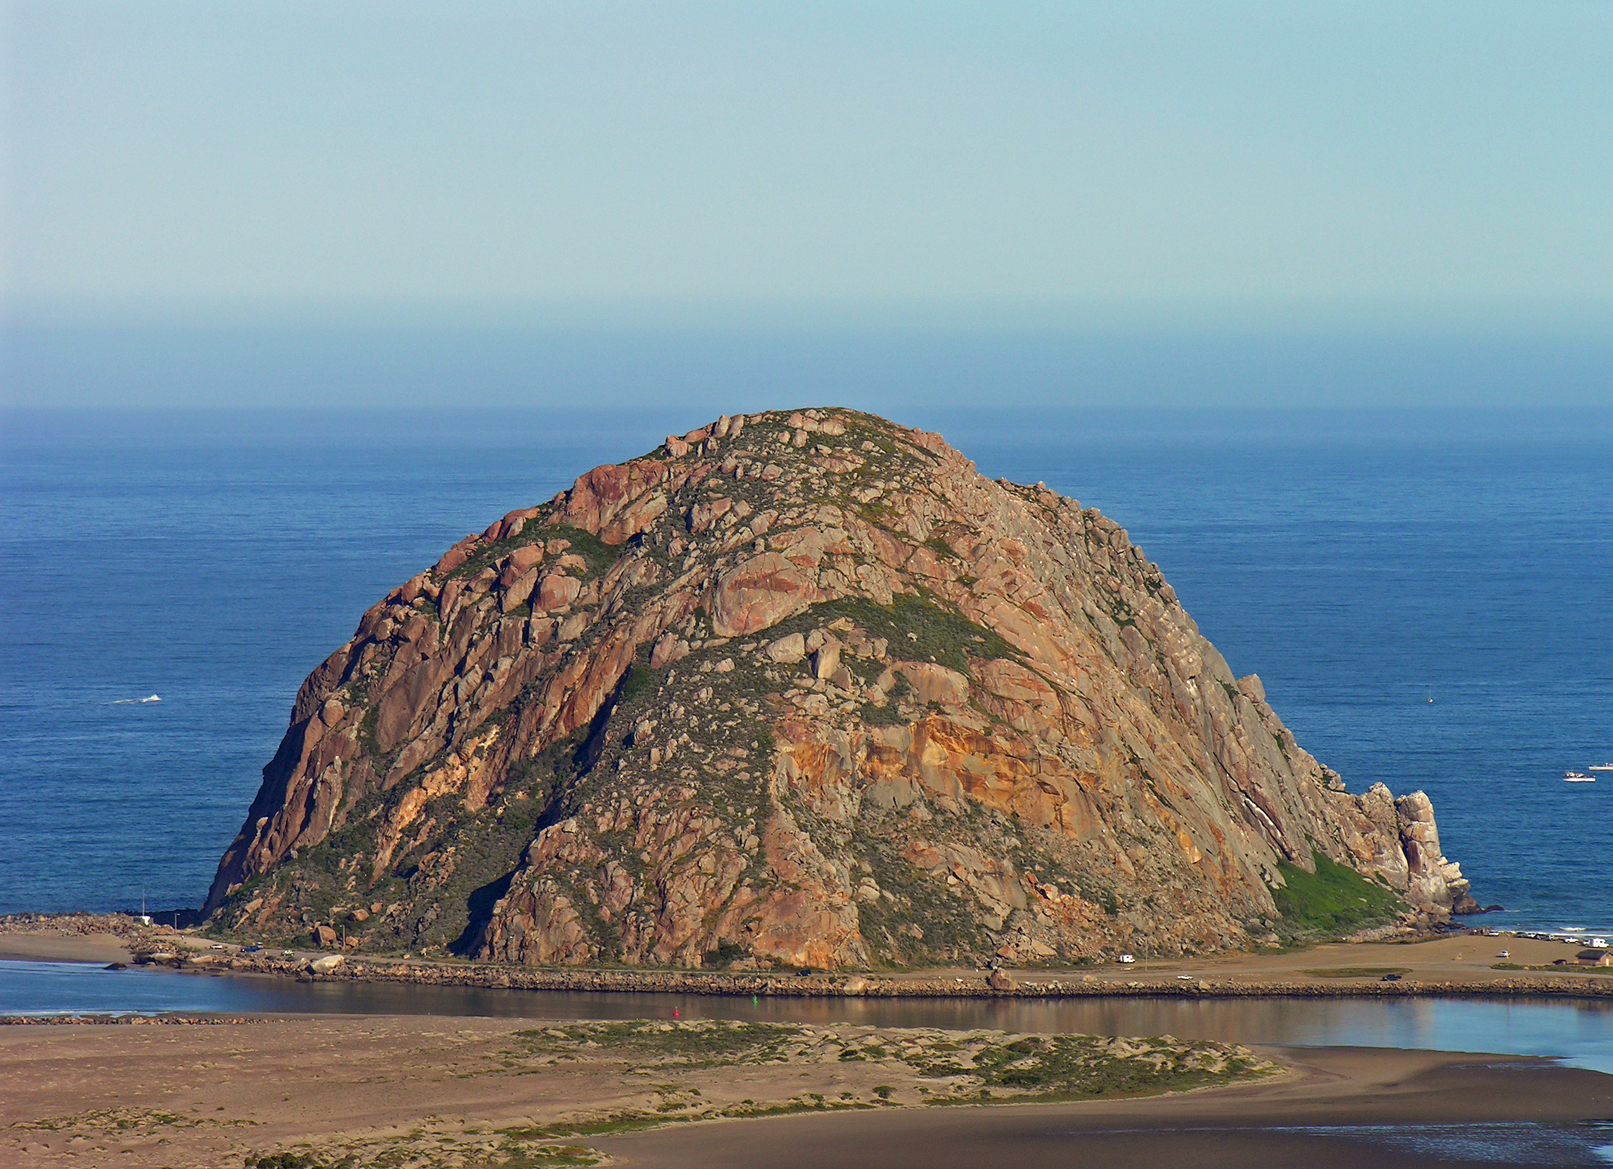 morro bay rock Find great deals on ebay for morro (bay,rock) shop with confidence.